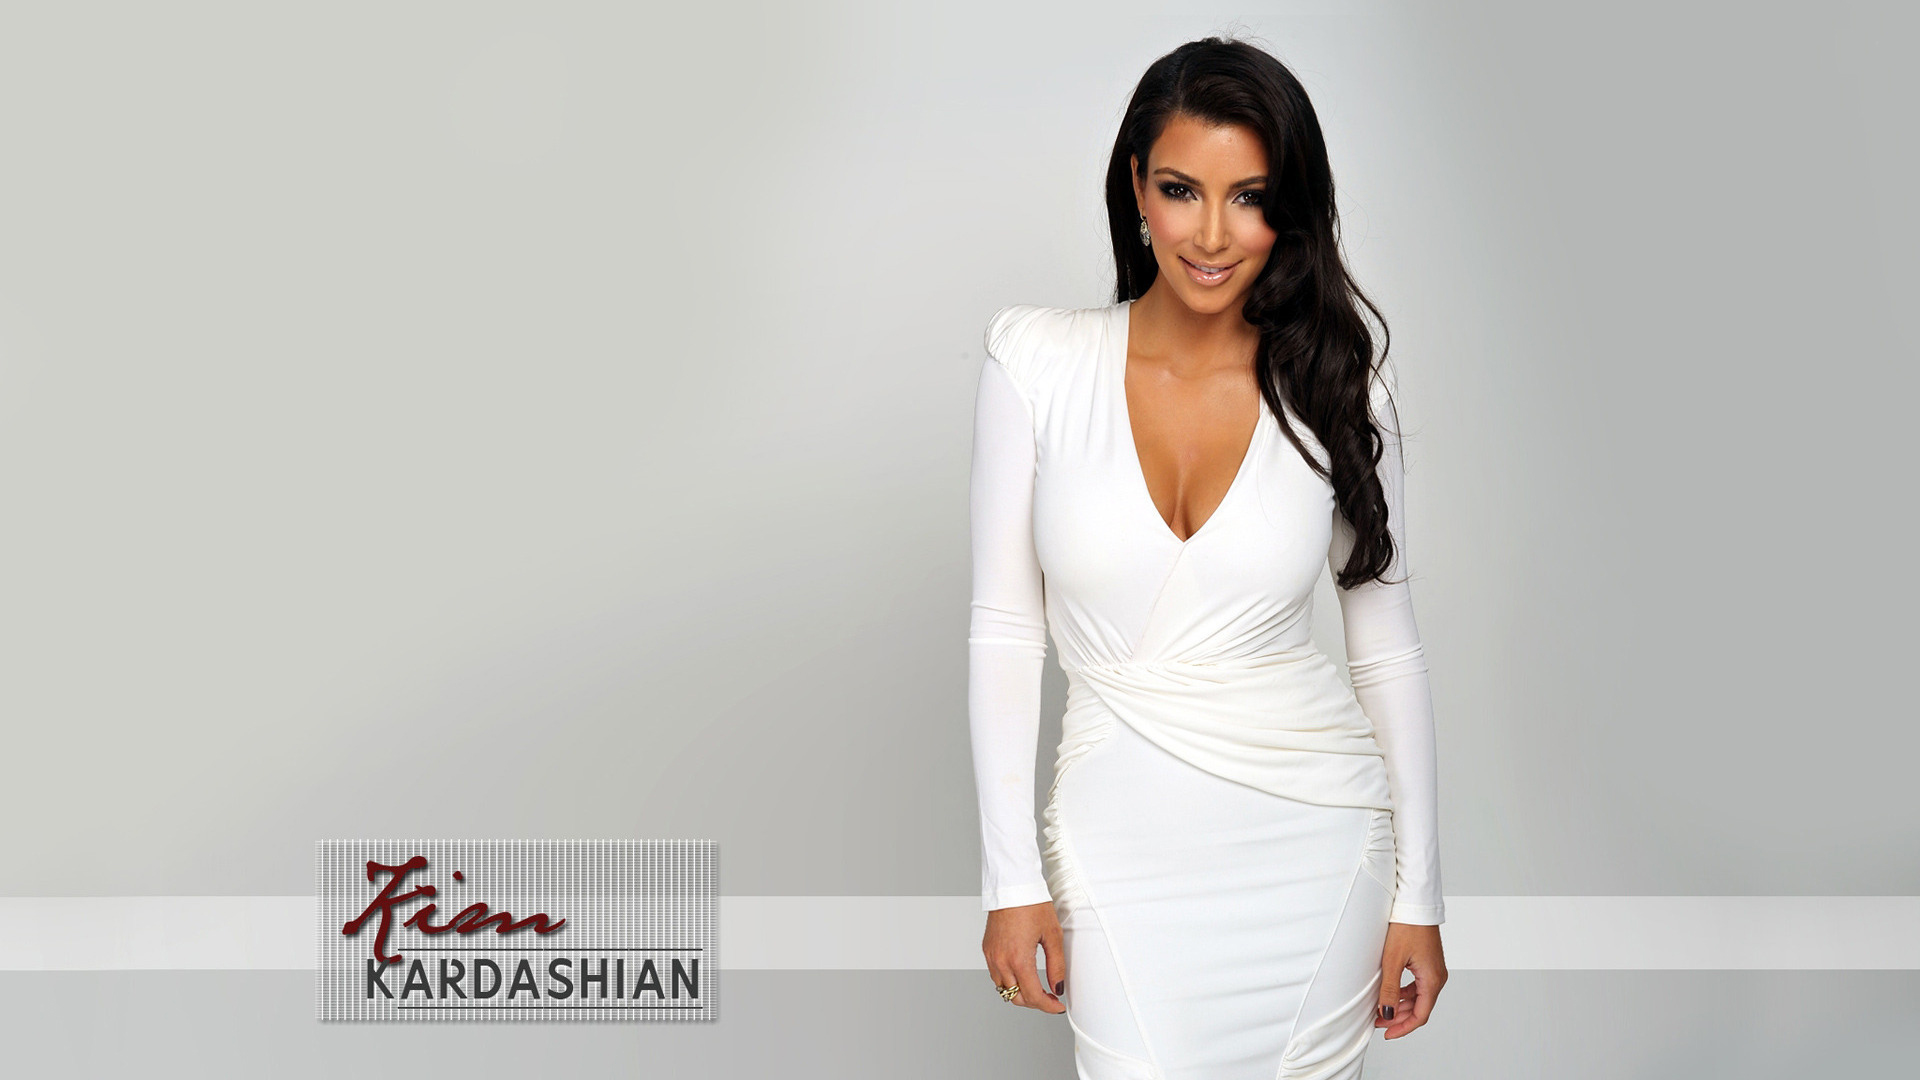 Kim Kardashian Desktop Background   Wallpaper High 1920x1080